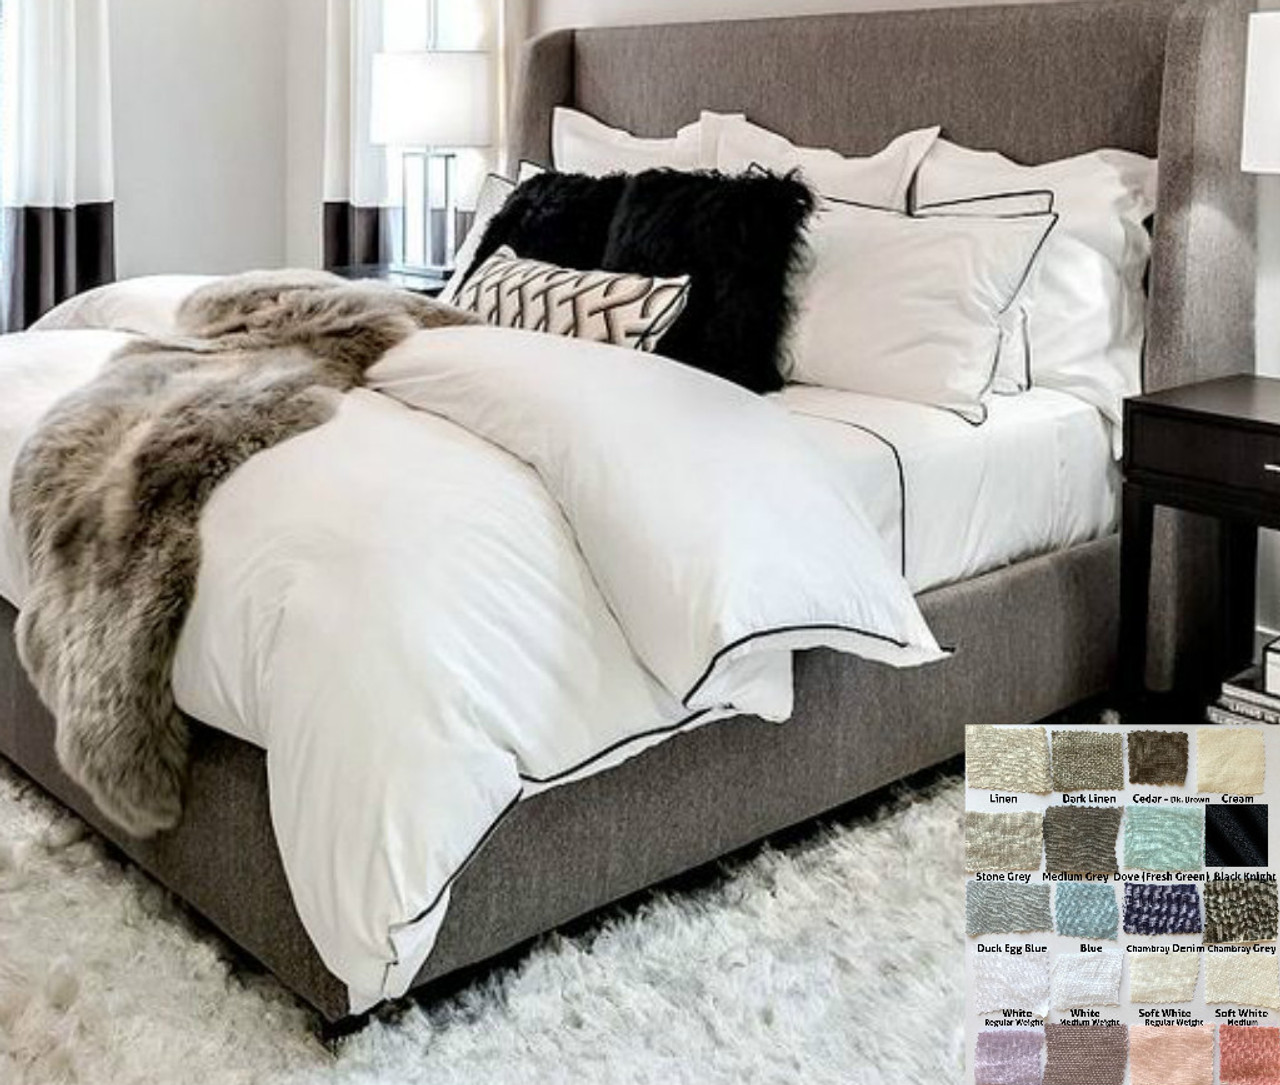 Linen Duvet Cover With Piping Finish Multiple Colors